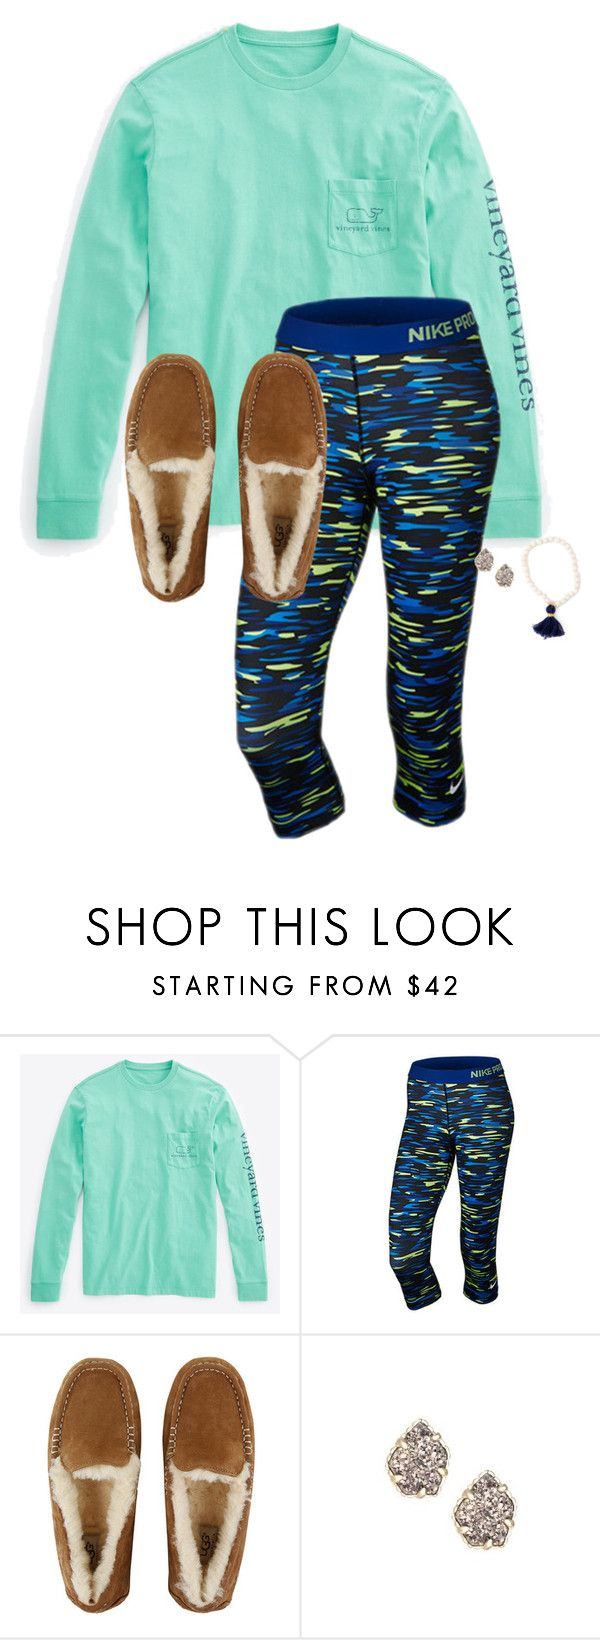 """""""Thanks for 900!!!"""" by hayley-tennis ❤ liked on Polyvore featuring Vineyard Vines, NIKE, UGG Australia and Kendra Scott"""